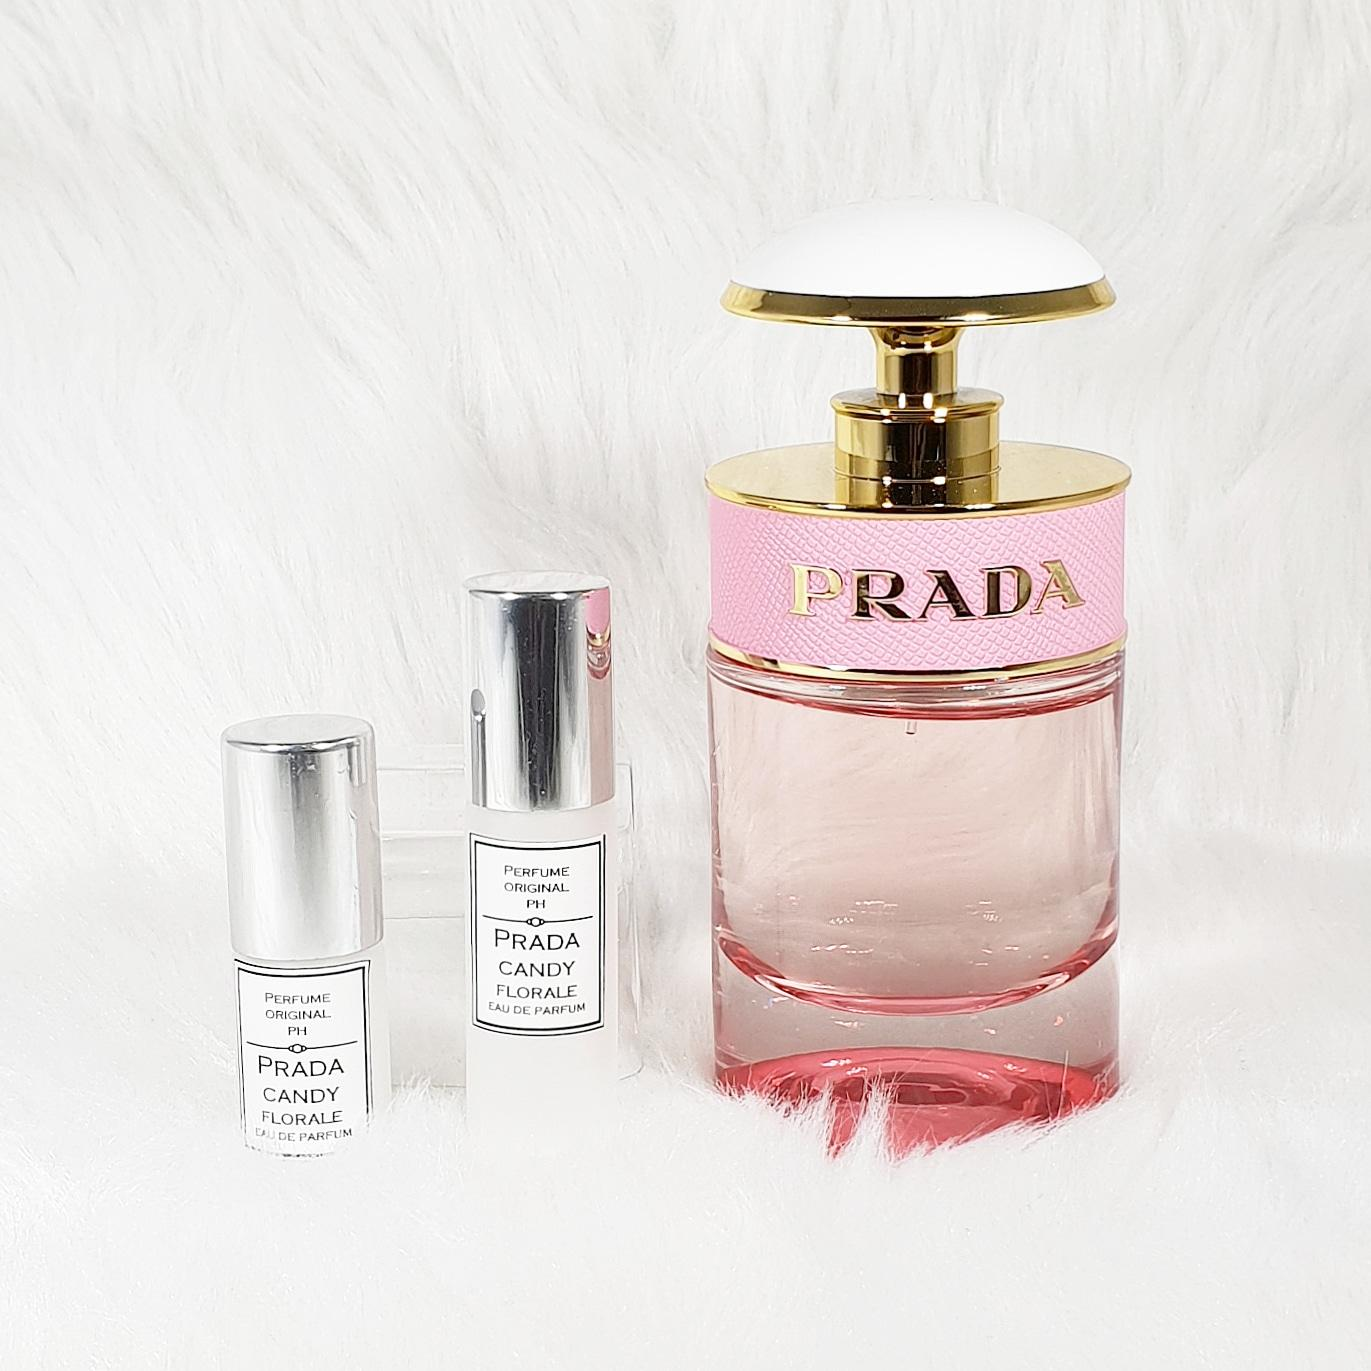 11cb9641 Prada Candy Florale 3ml perfume decant in white rollerball bottle (left  most)